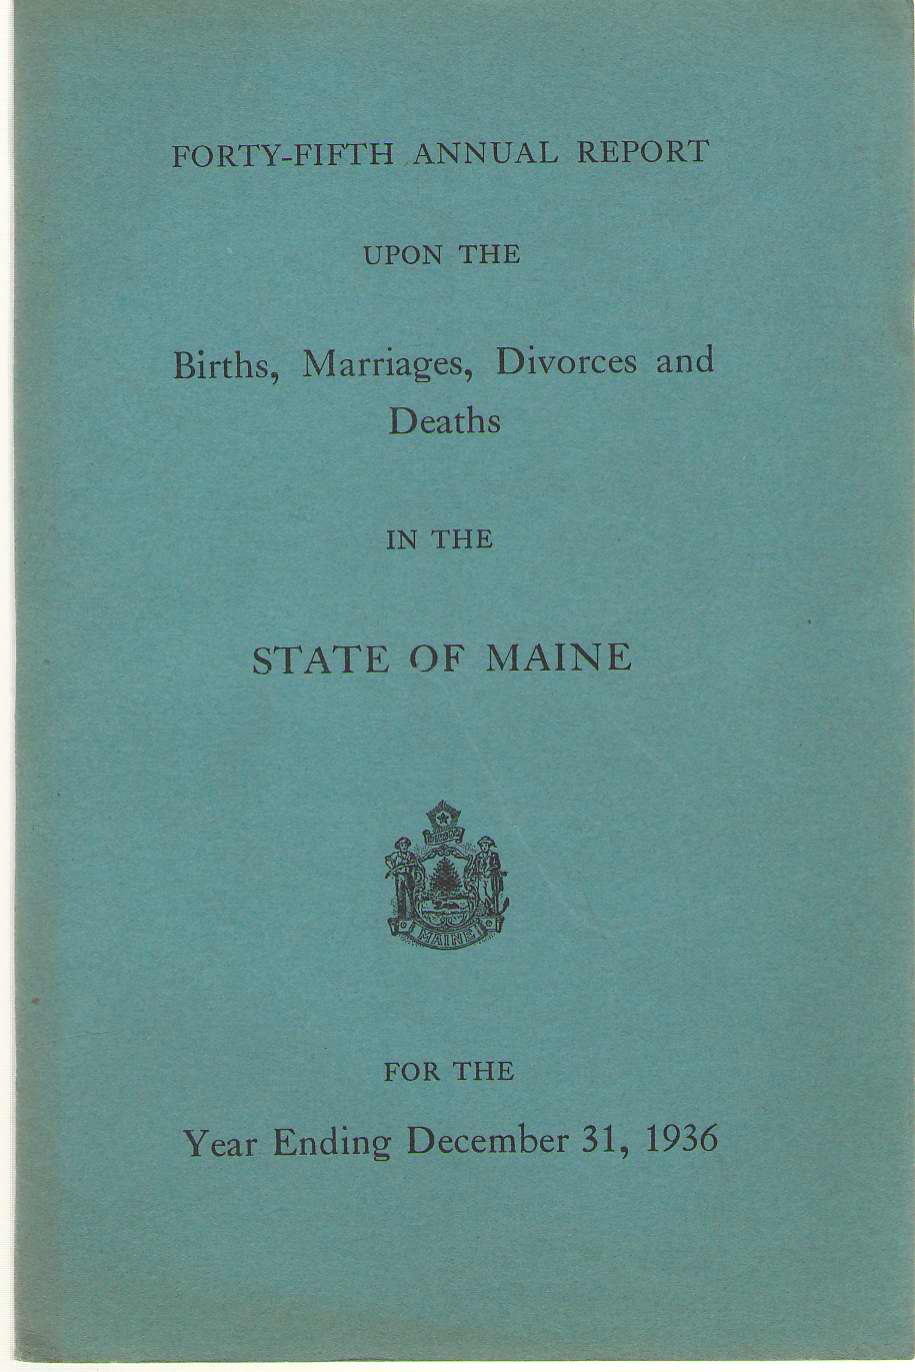 Forty-fifth Annual Report On Births, Marriages, Divorces, And Deaths, In The State Of Maine For The Year Ending December 31, 1936, No Author Noted